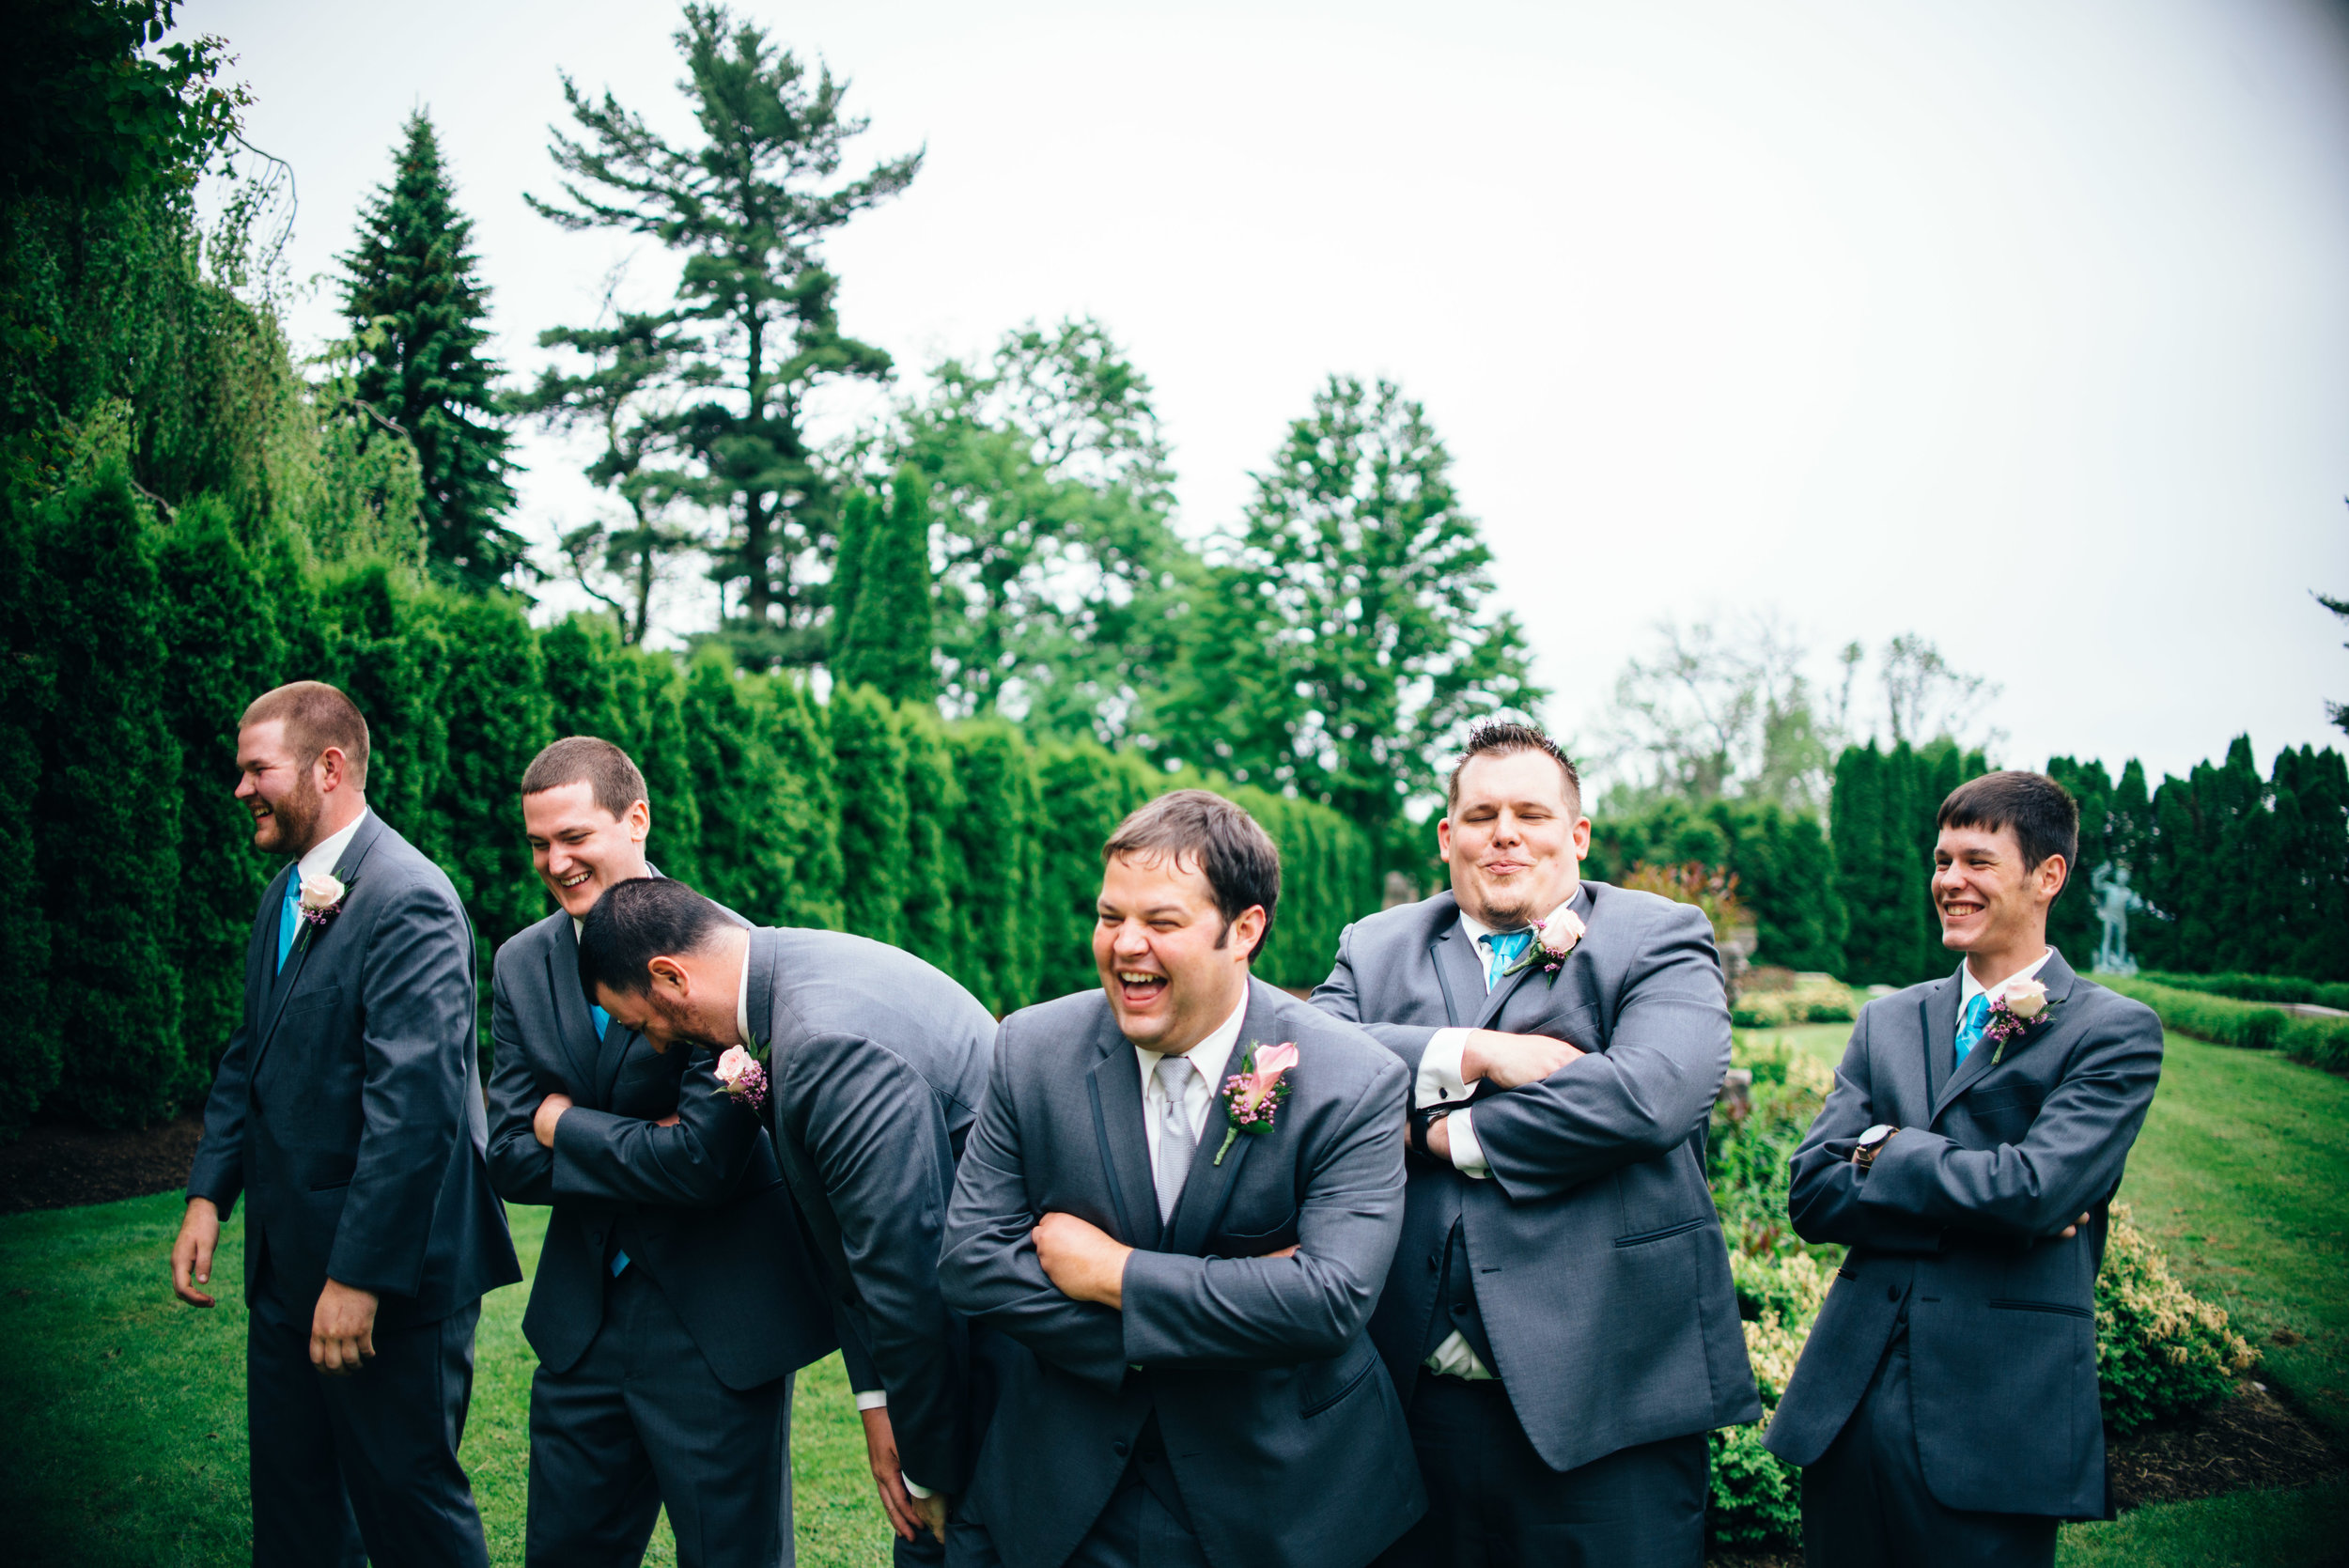 Candid photo of five groomsmen and a groom standing in a garden laughing